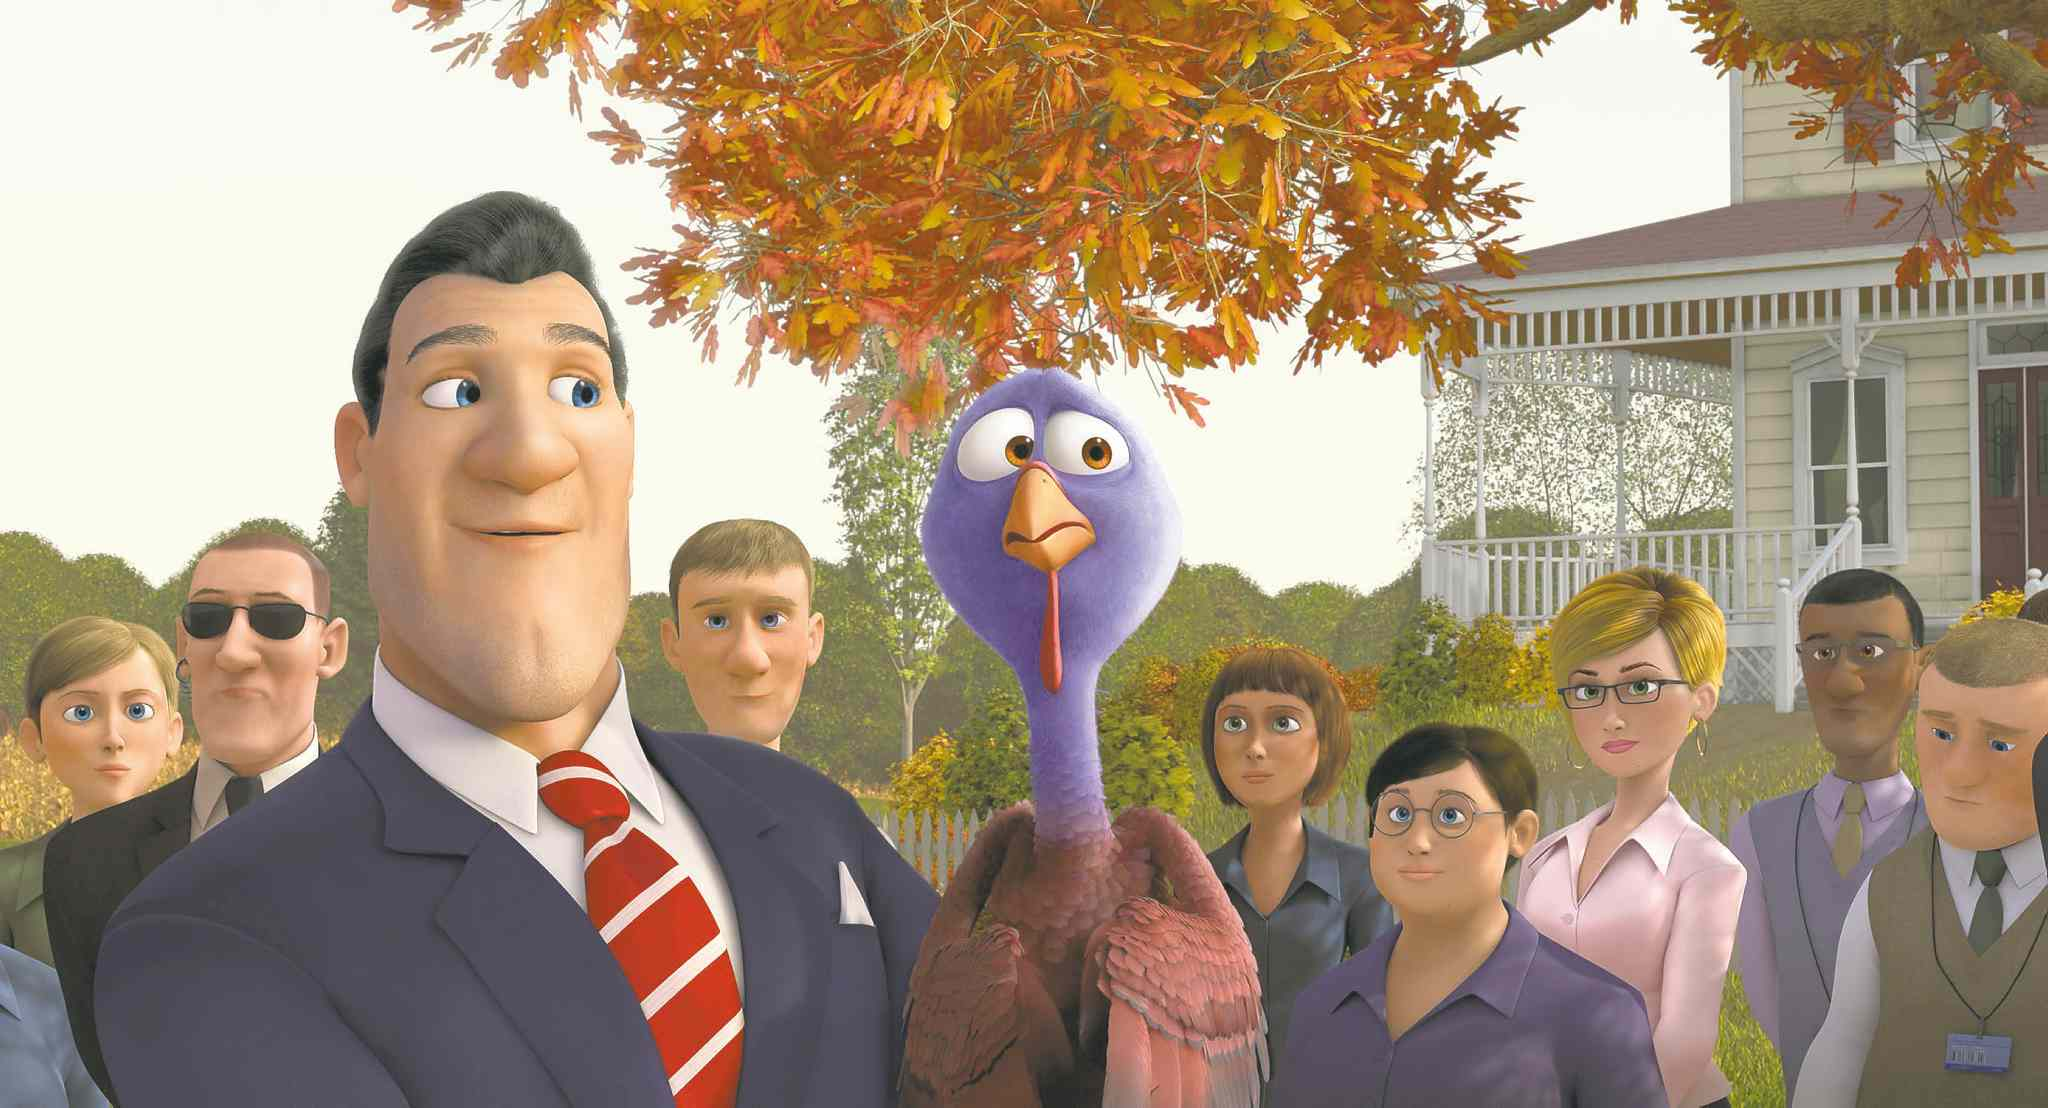 This image released by Relativity Media shows The President, voiced by Jimmy Hayward (left) and Reggie, voiced by Owen Wilson, in a scene from the animated movie Free Birds. (Relativity Media / The Associated Press)